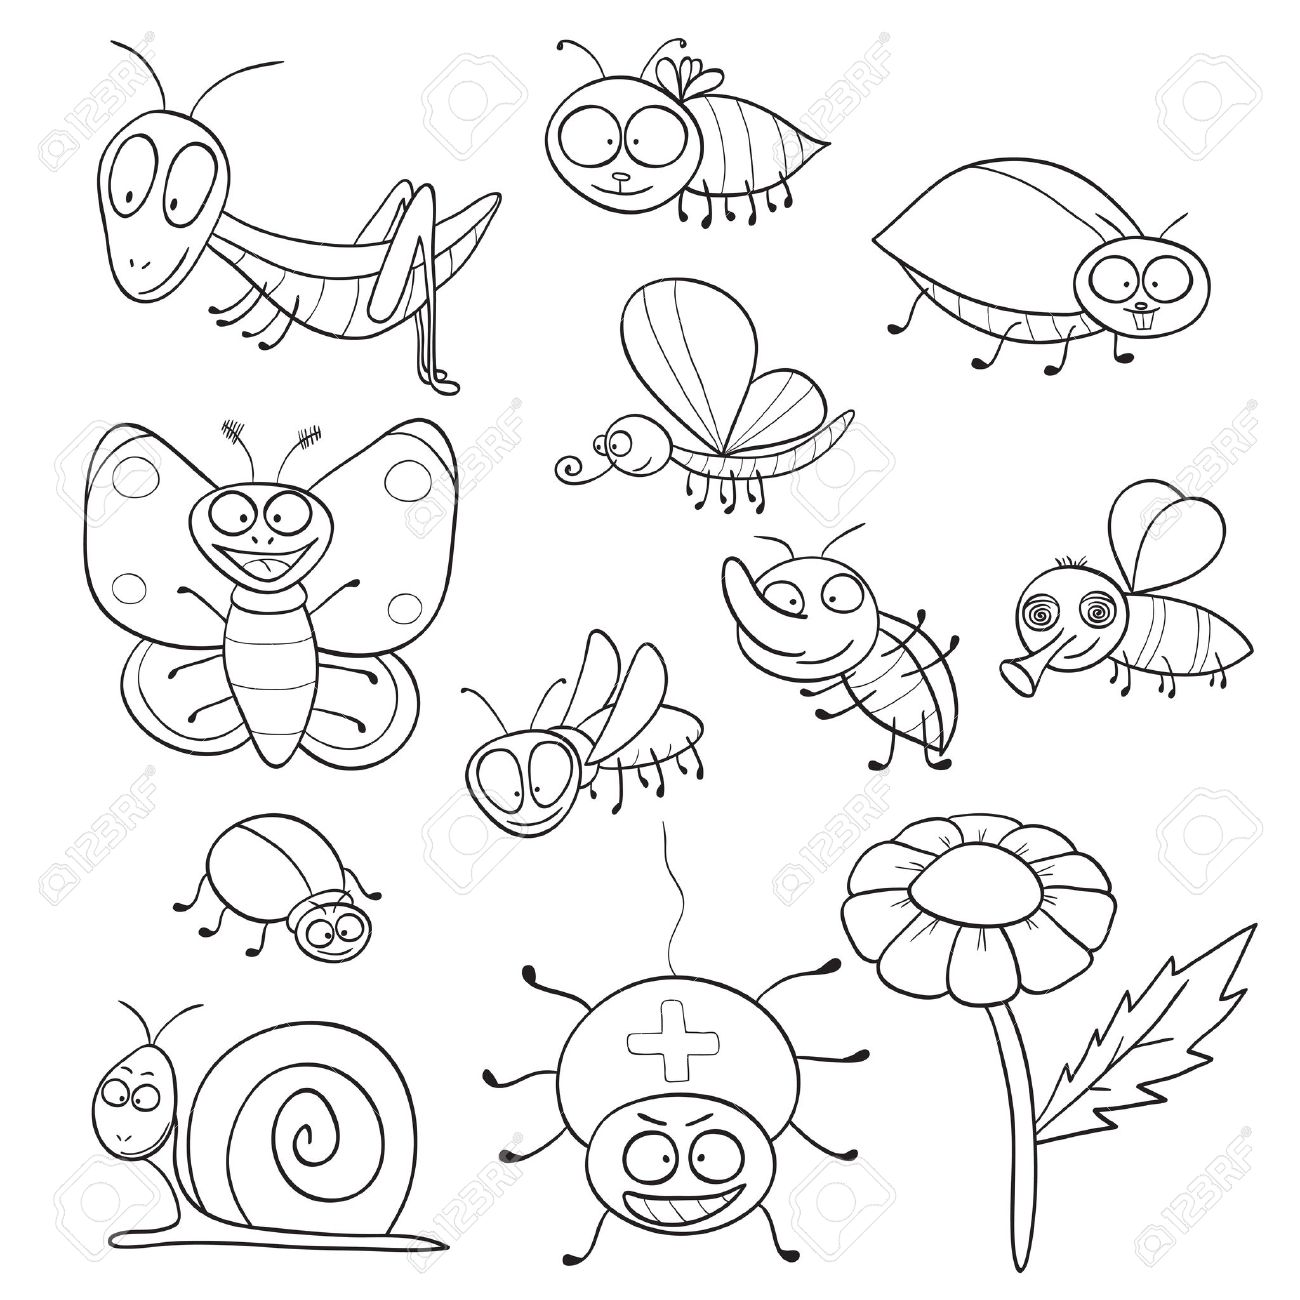 Outlined Cute Cartoon Insects For Coloring Book Vector Illustration